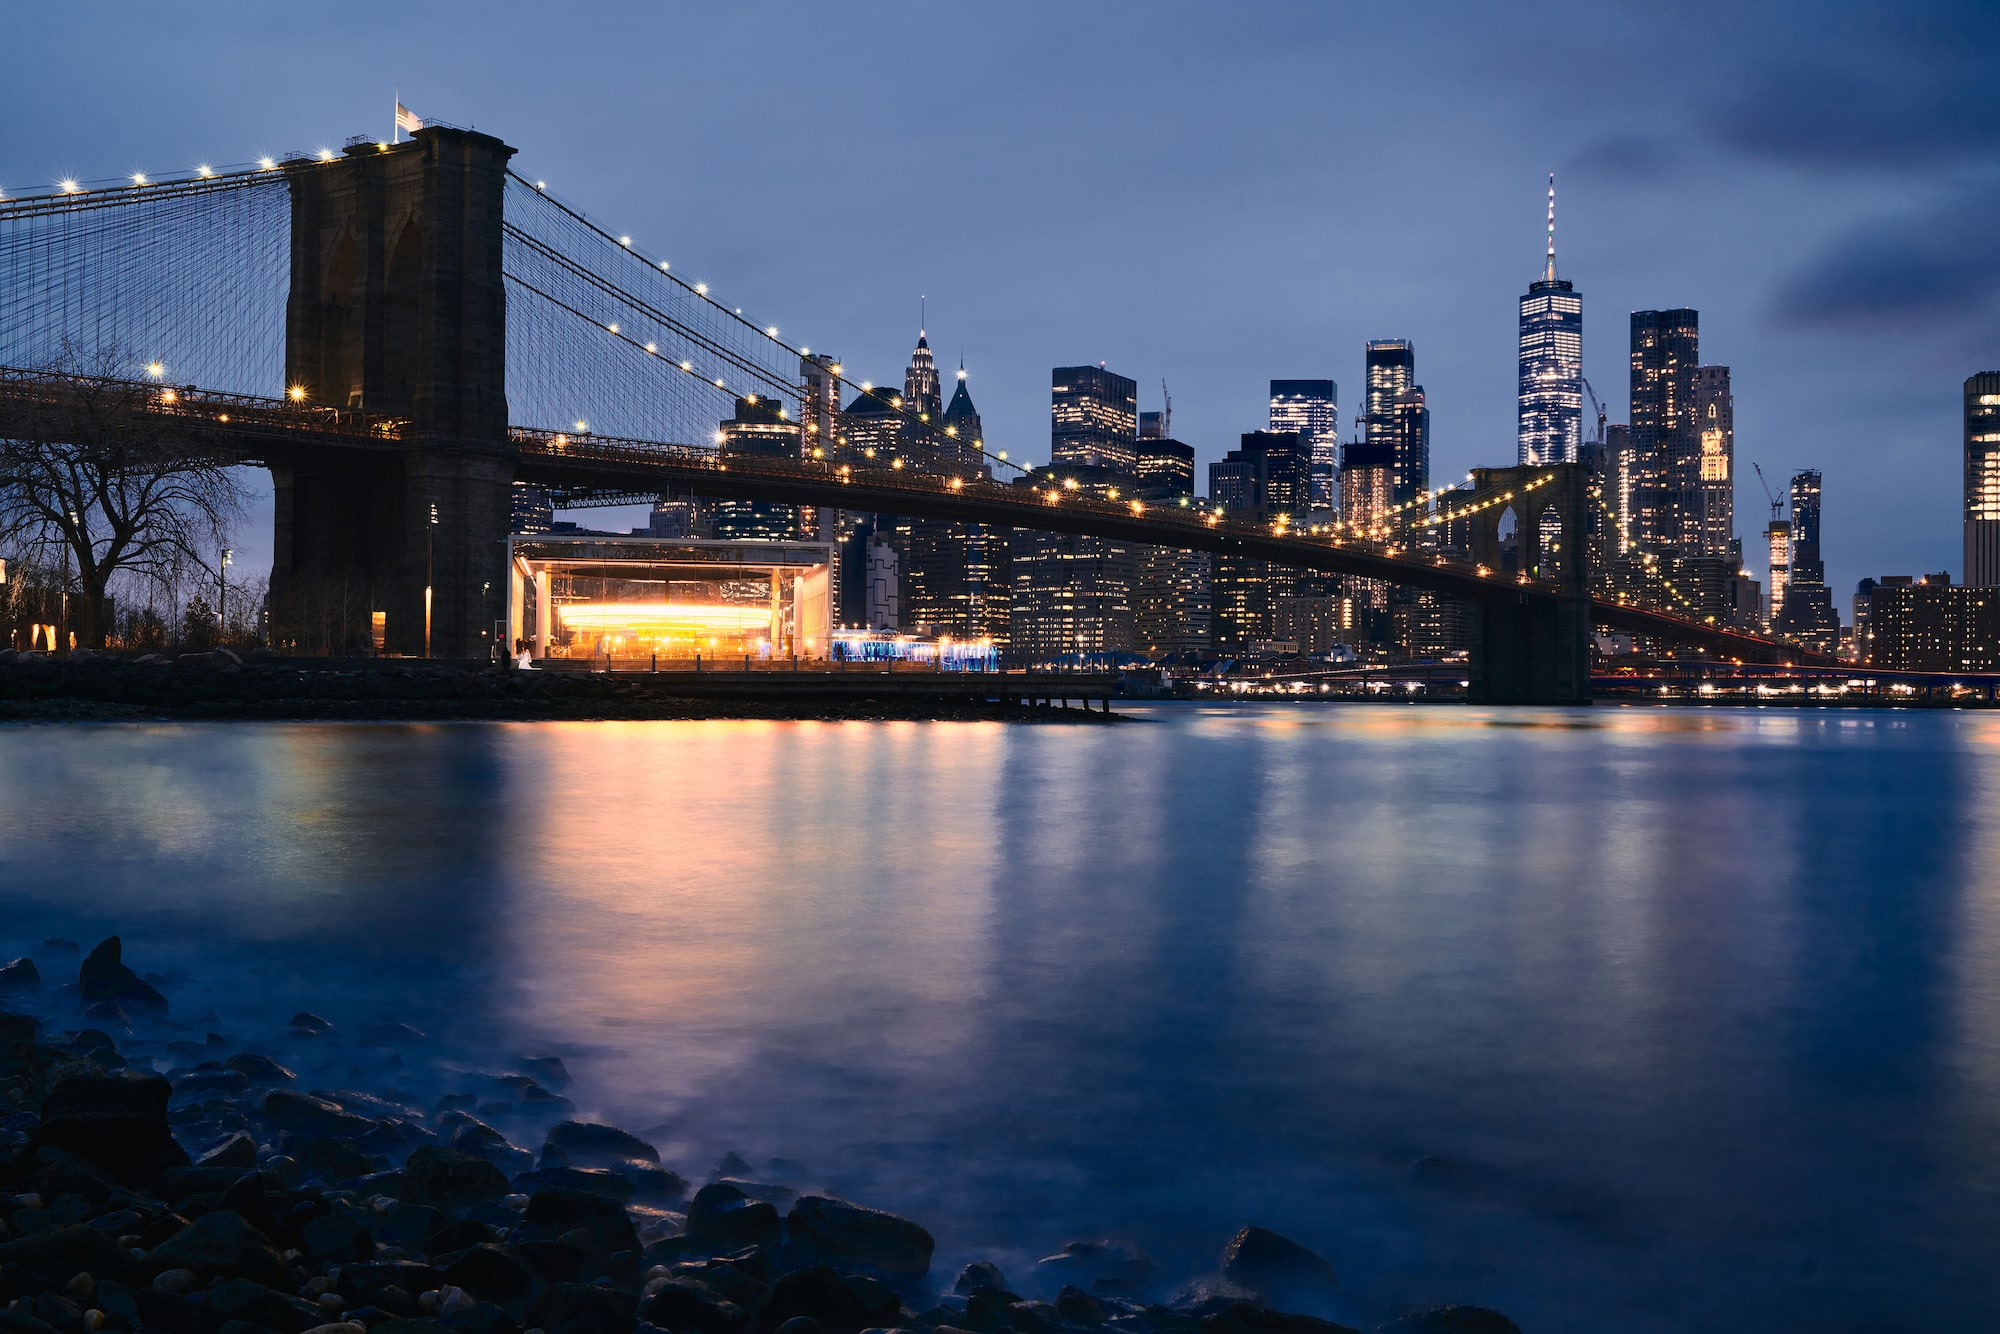 Ron Timehin sony alpha 7RM3 nocni pogled na manhattan uz most brooklyn u daljini